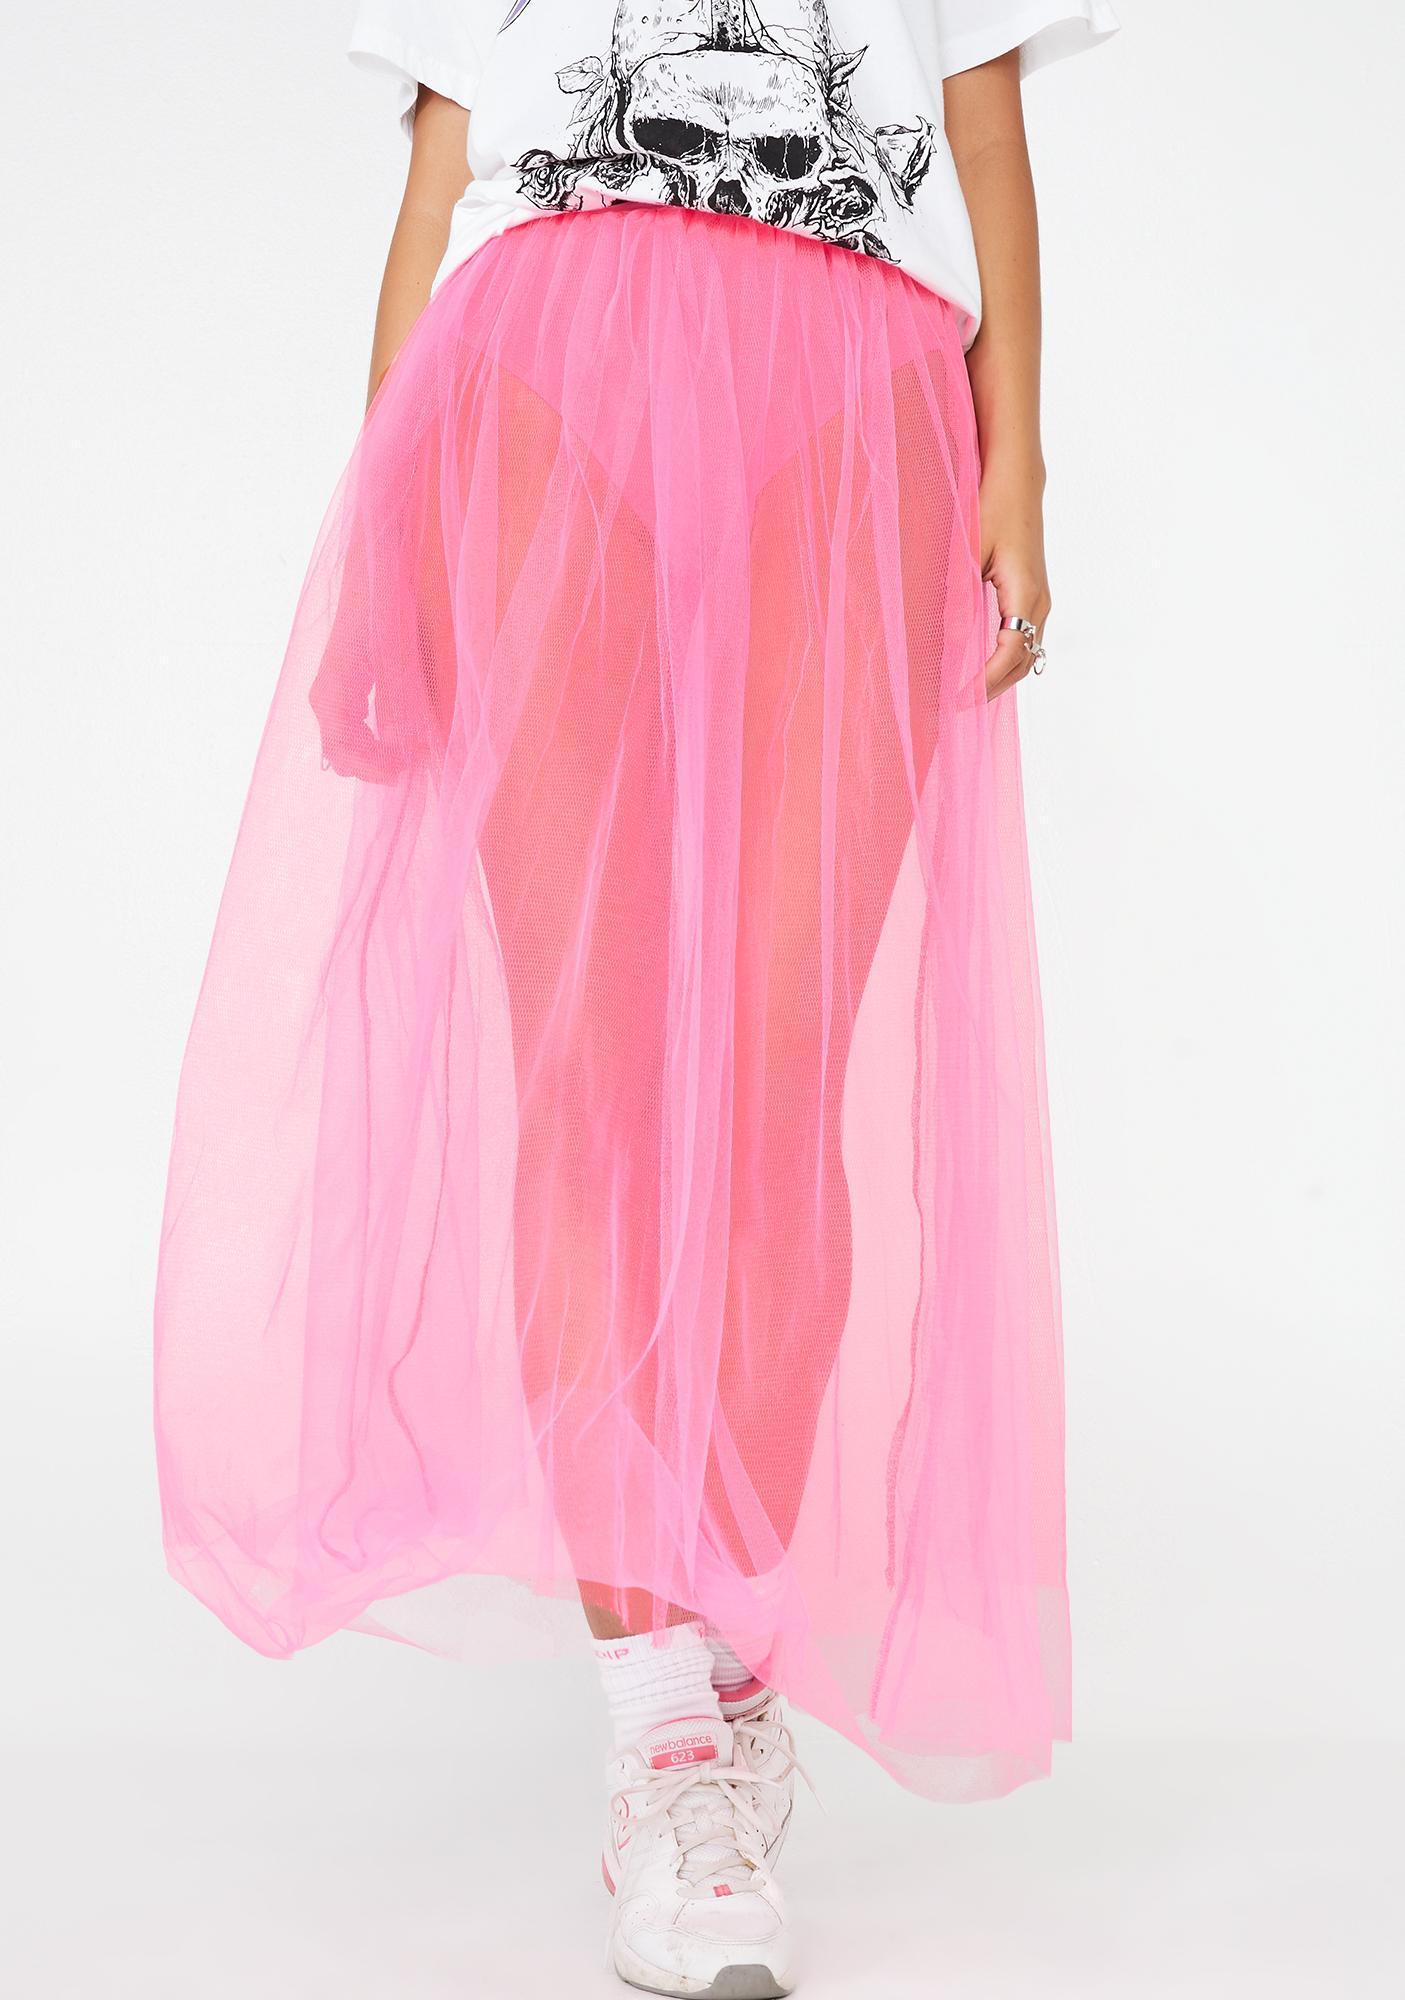 ddfee0d279 Neon Pink Sheer Tulle Maxi Skirt | Dolls Kill